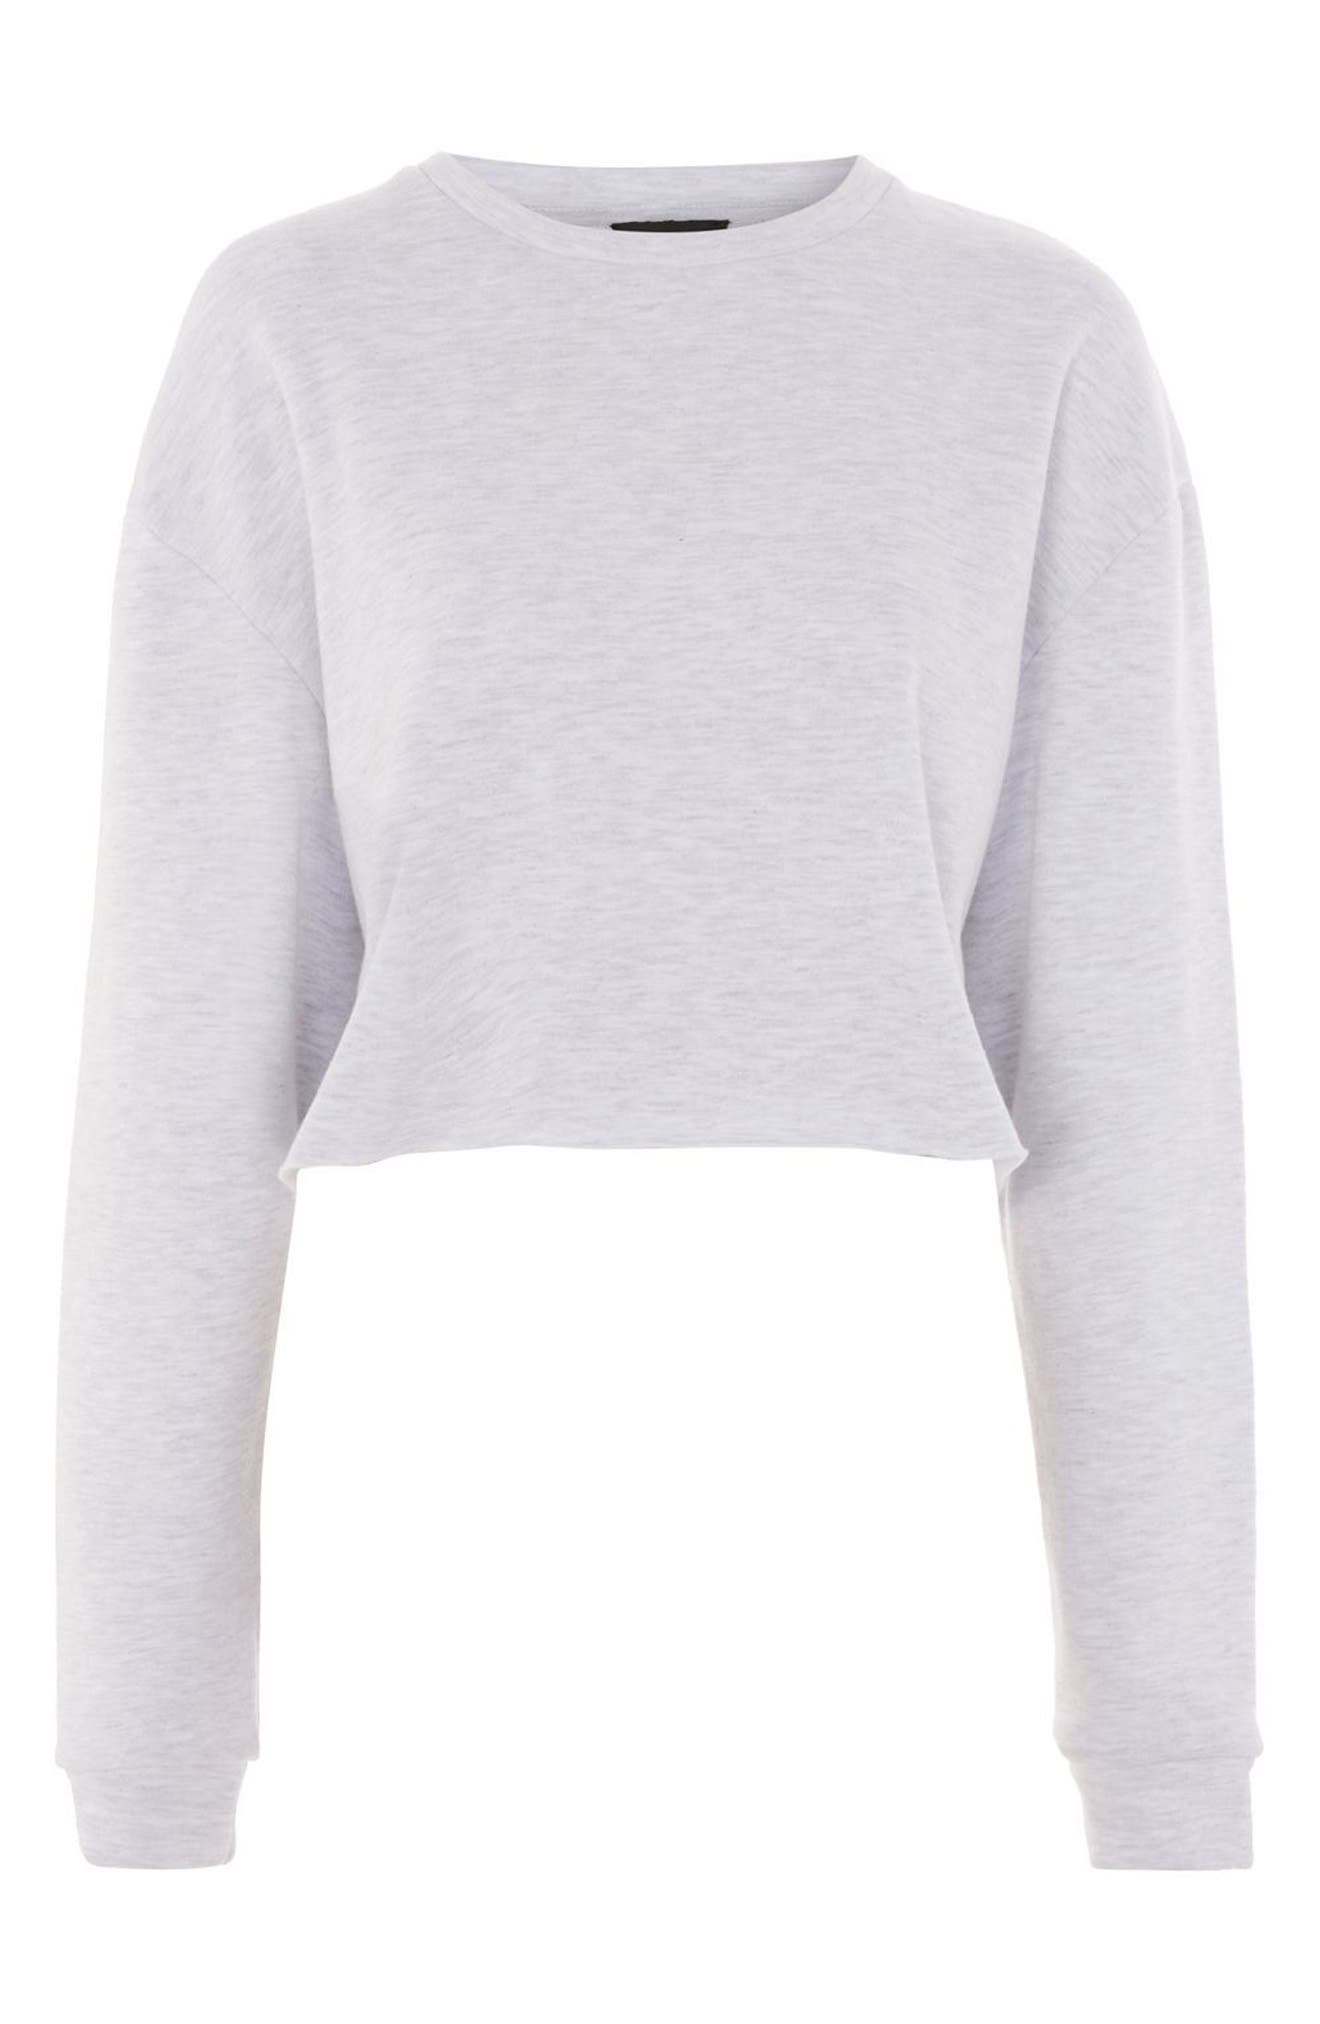 Crop Sweatshirt,                             Alternate thumbnail 4, color,                             Grey Marl